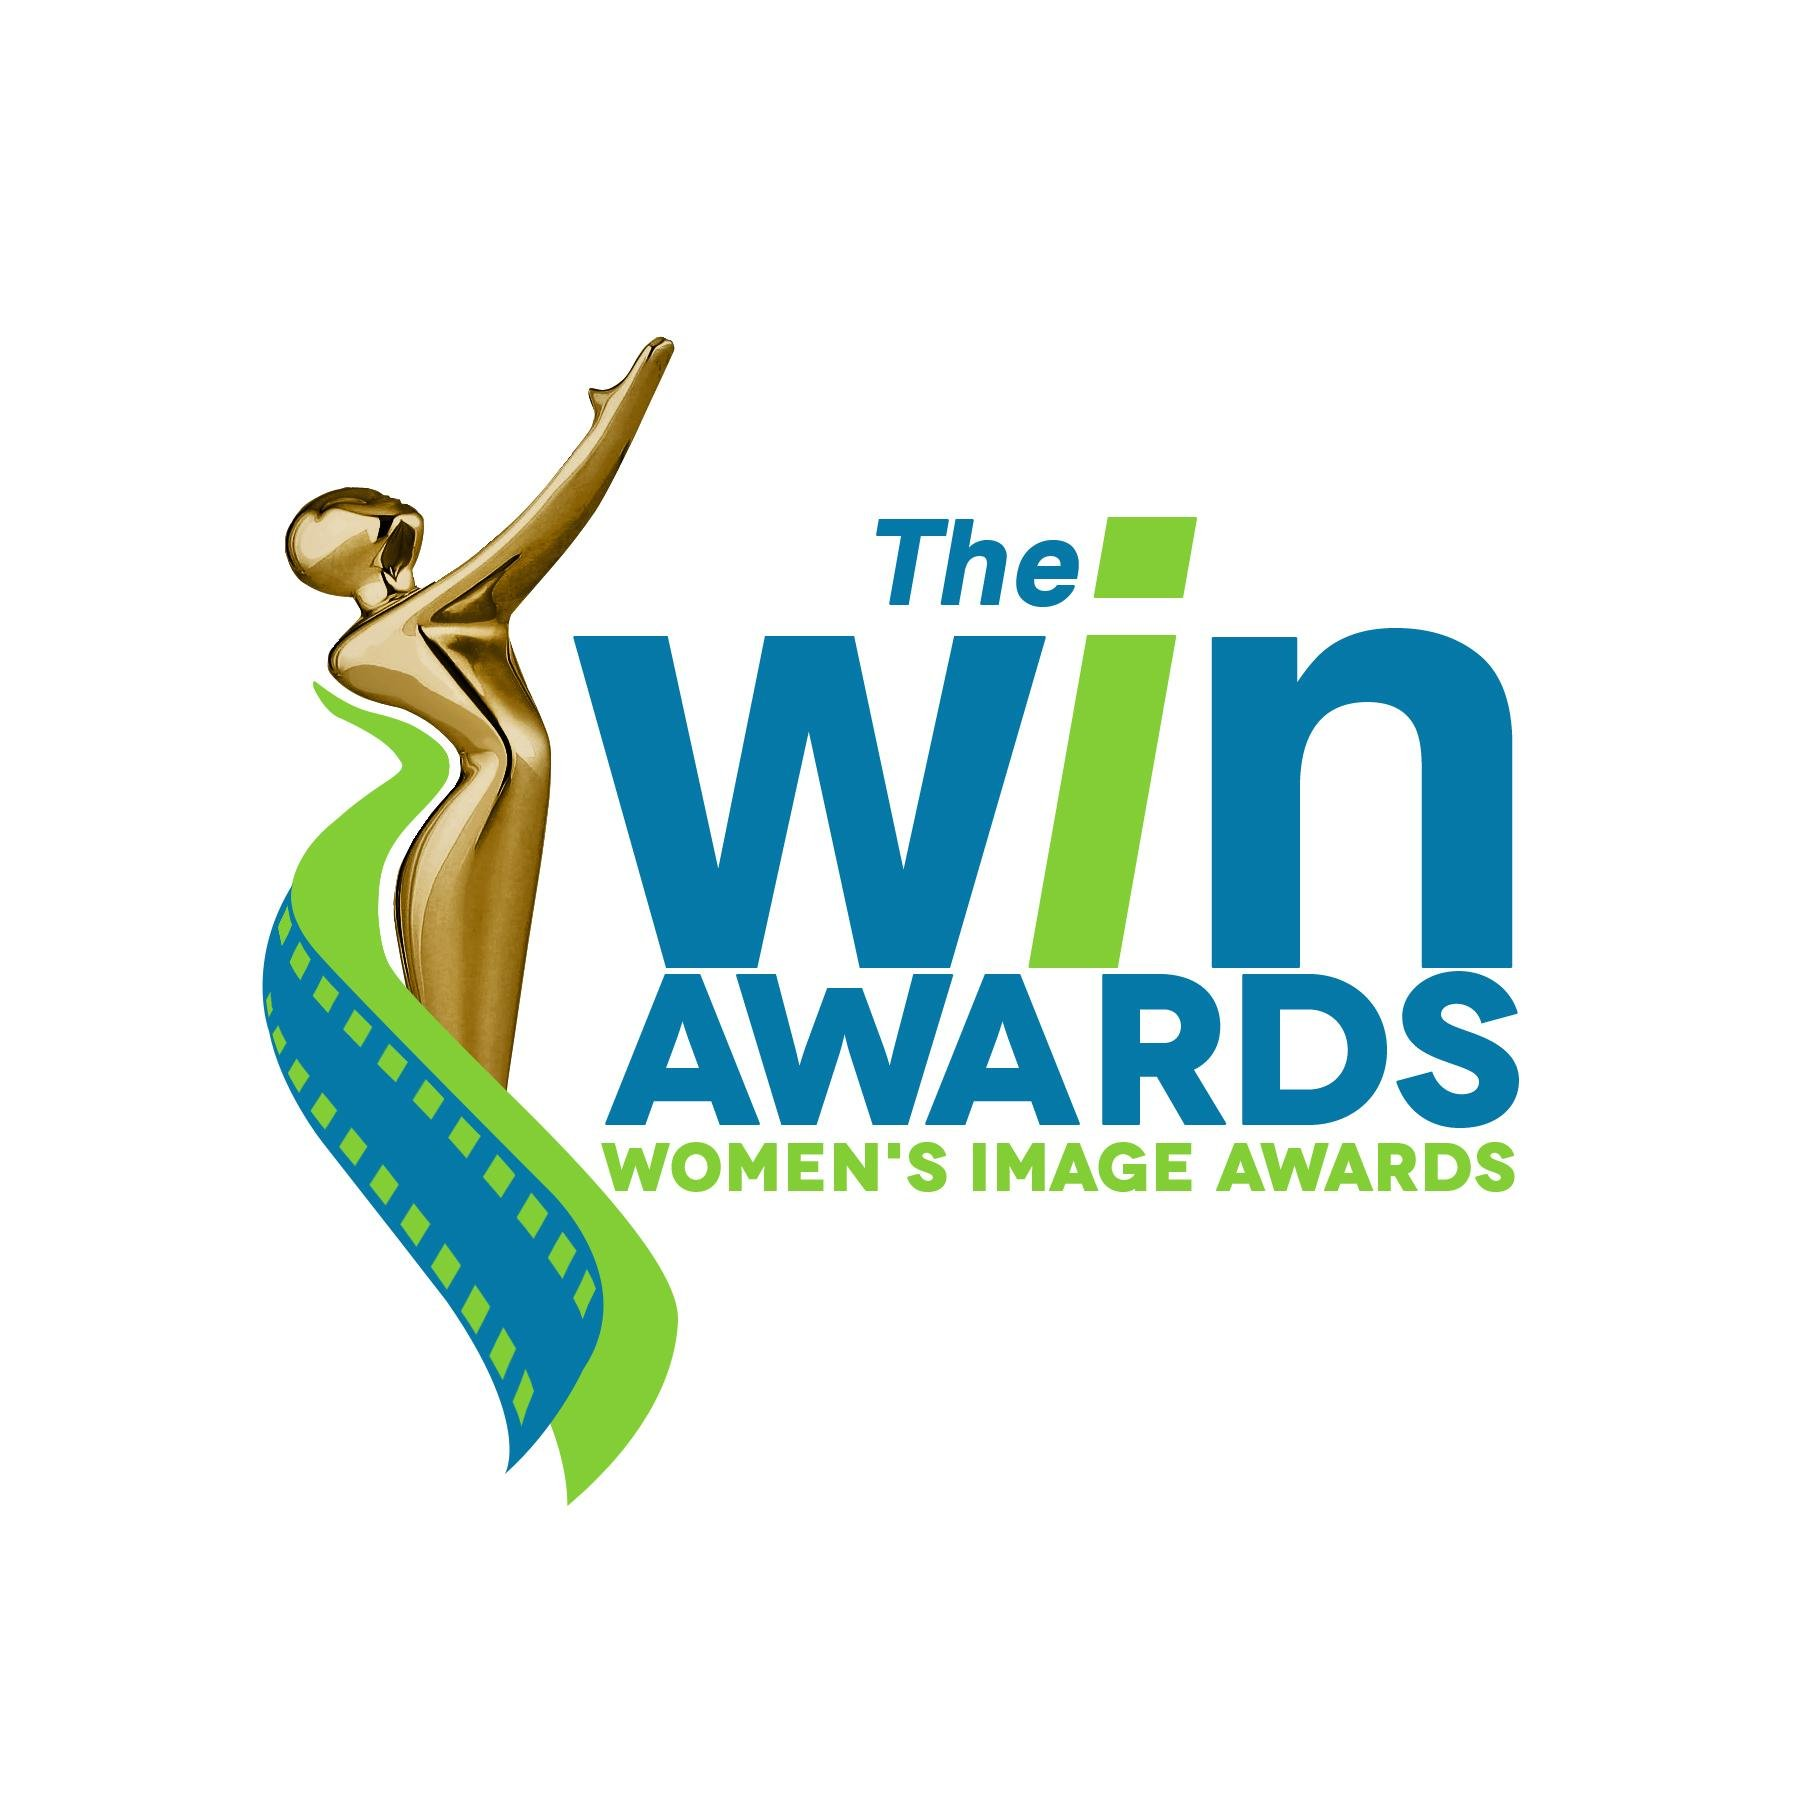 The Womens' Image Awards